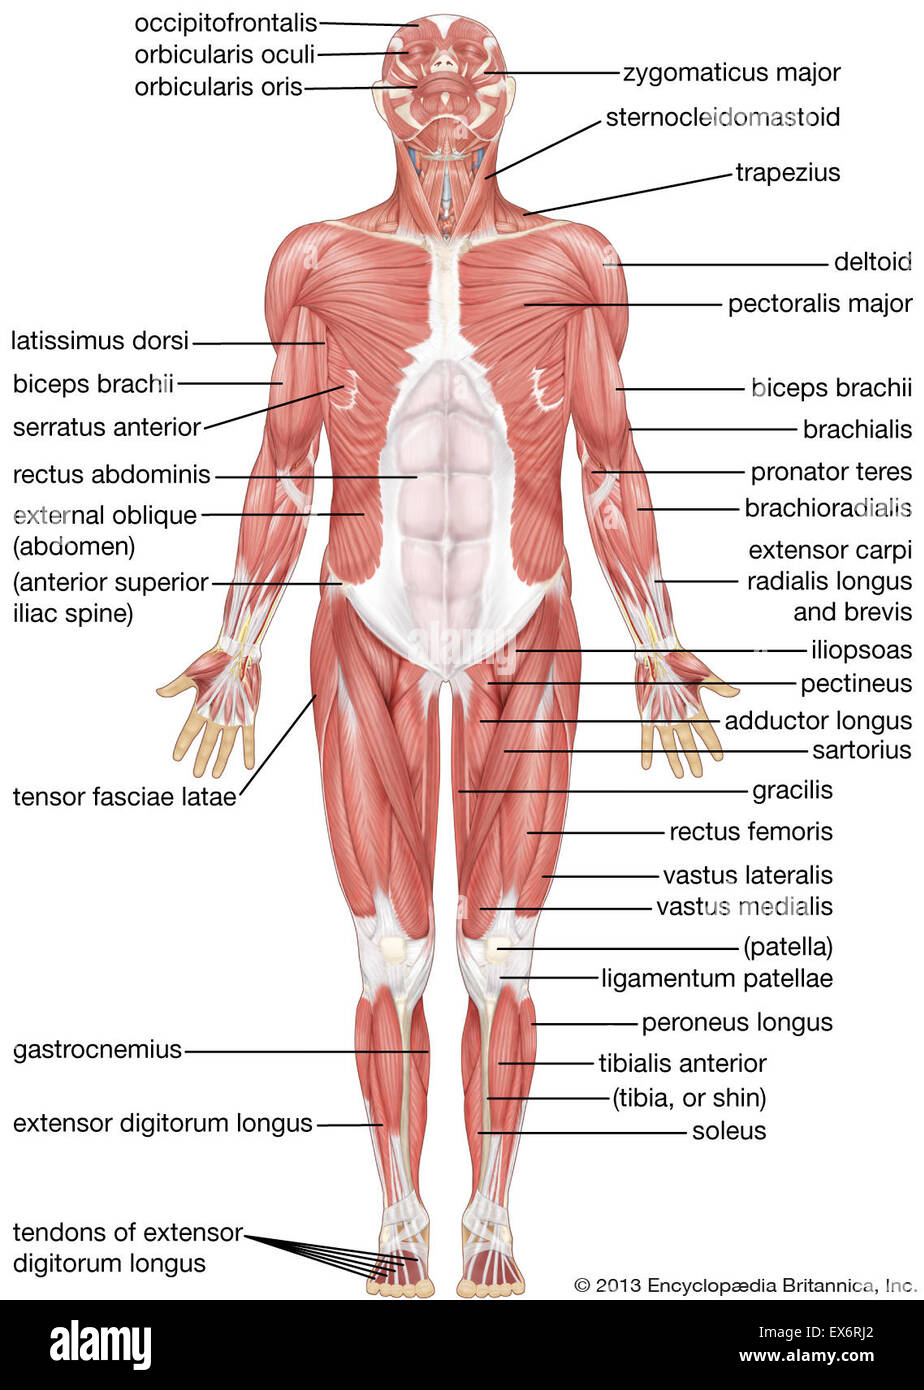 Human Muscular System Stock Photos & Human Muscular System Stock ...